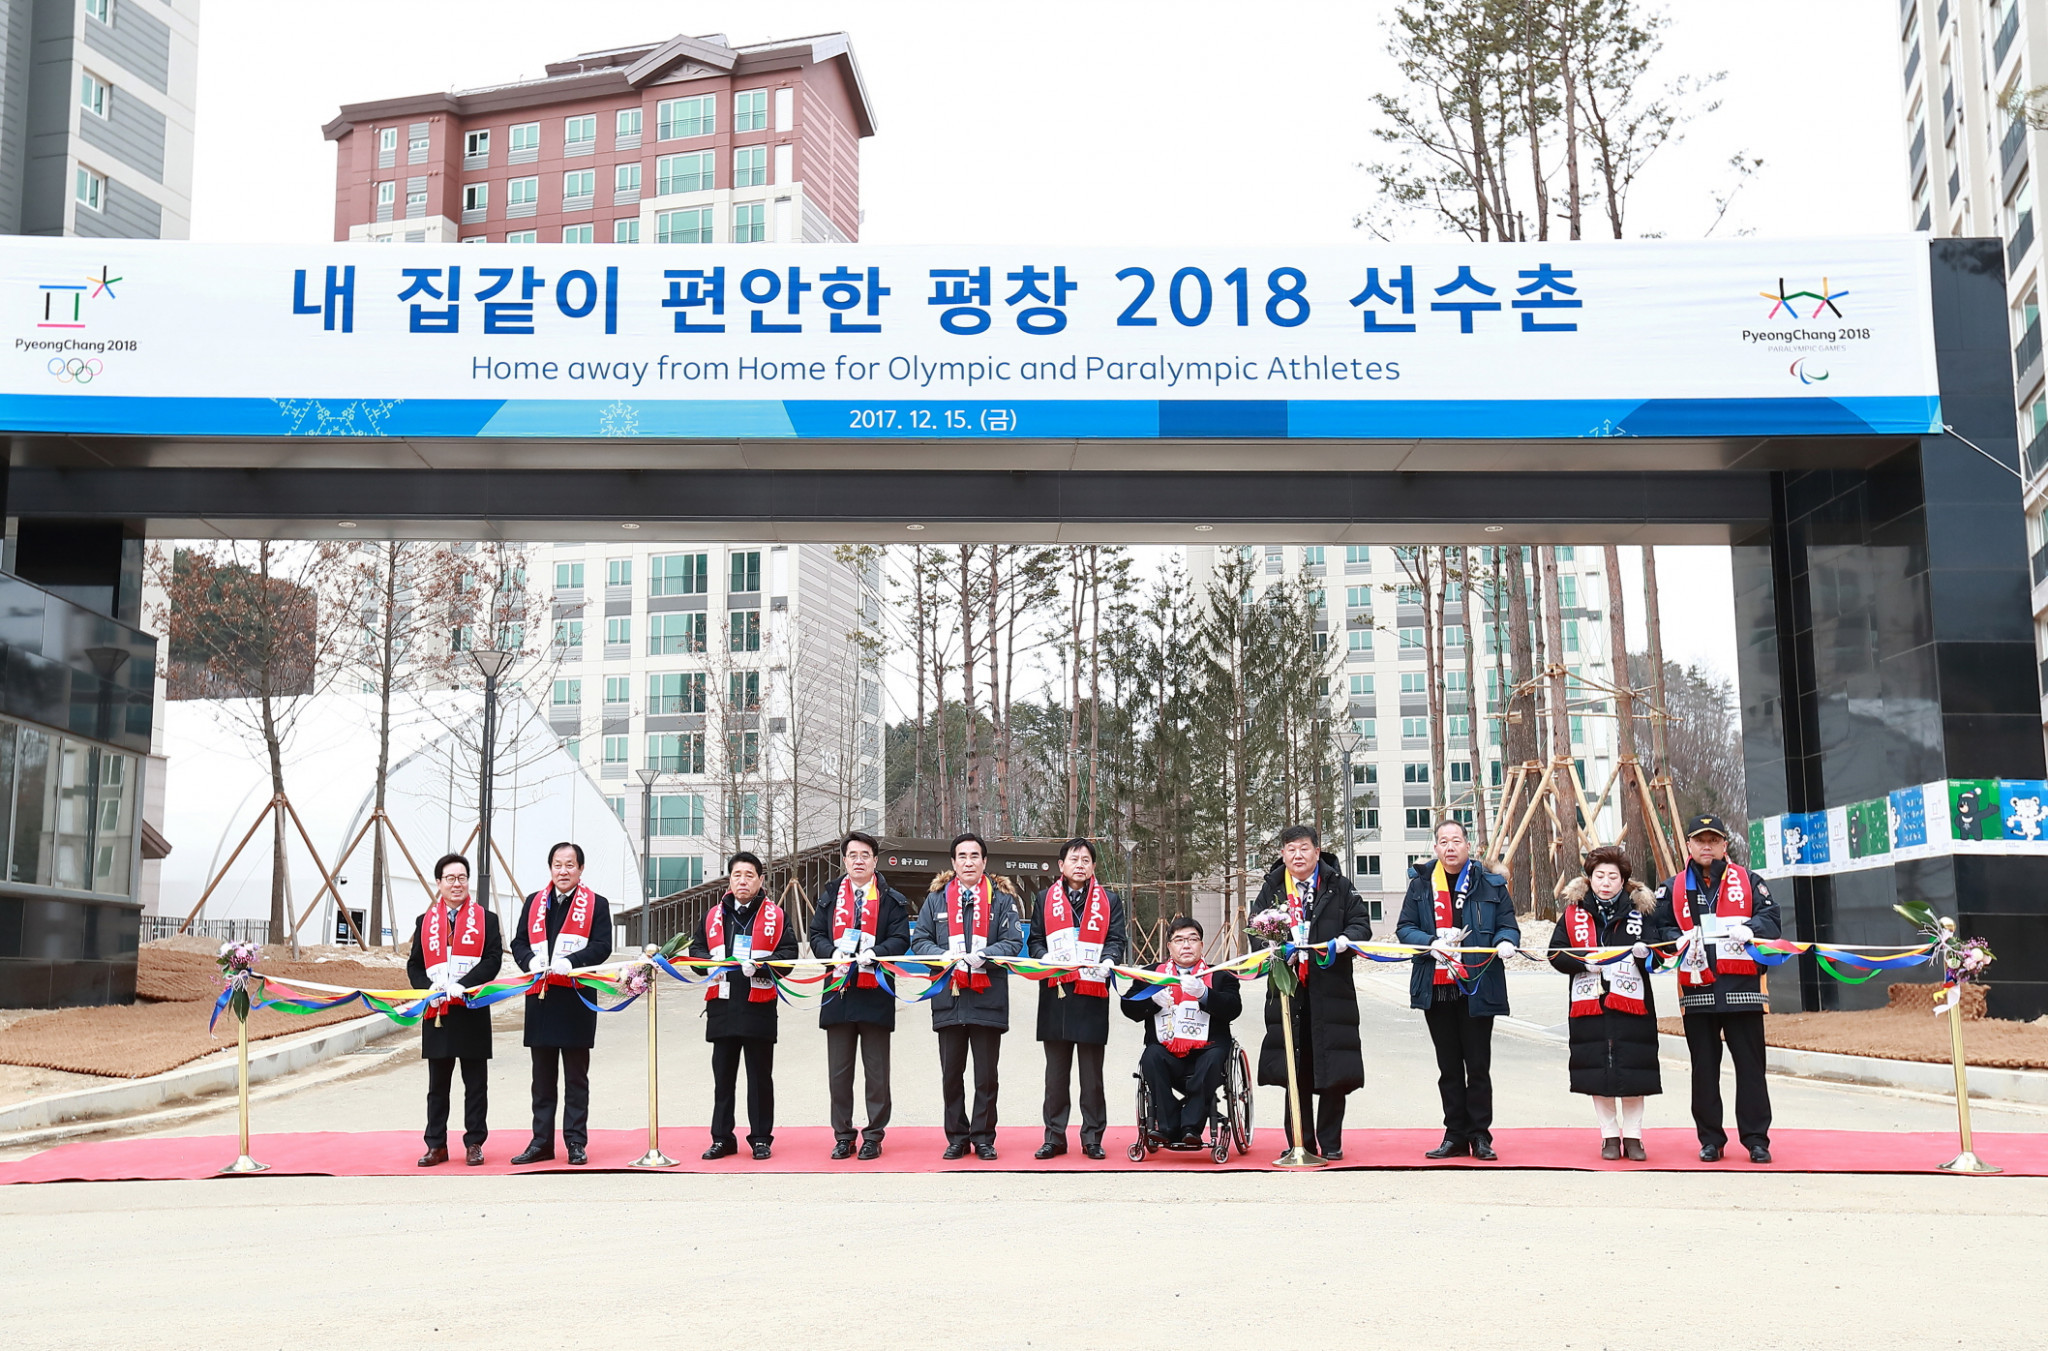 A special ceremony took place today to recognise the completion of construction on the Athletes' Villages for the Pyeongchang 2018 Olympic and Paralympic Games ©Pyeongchang 2018